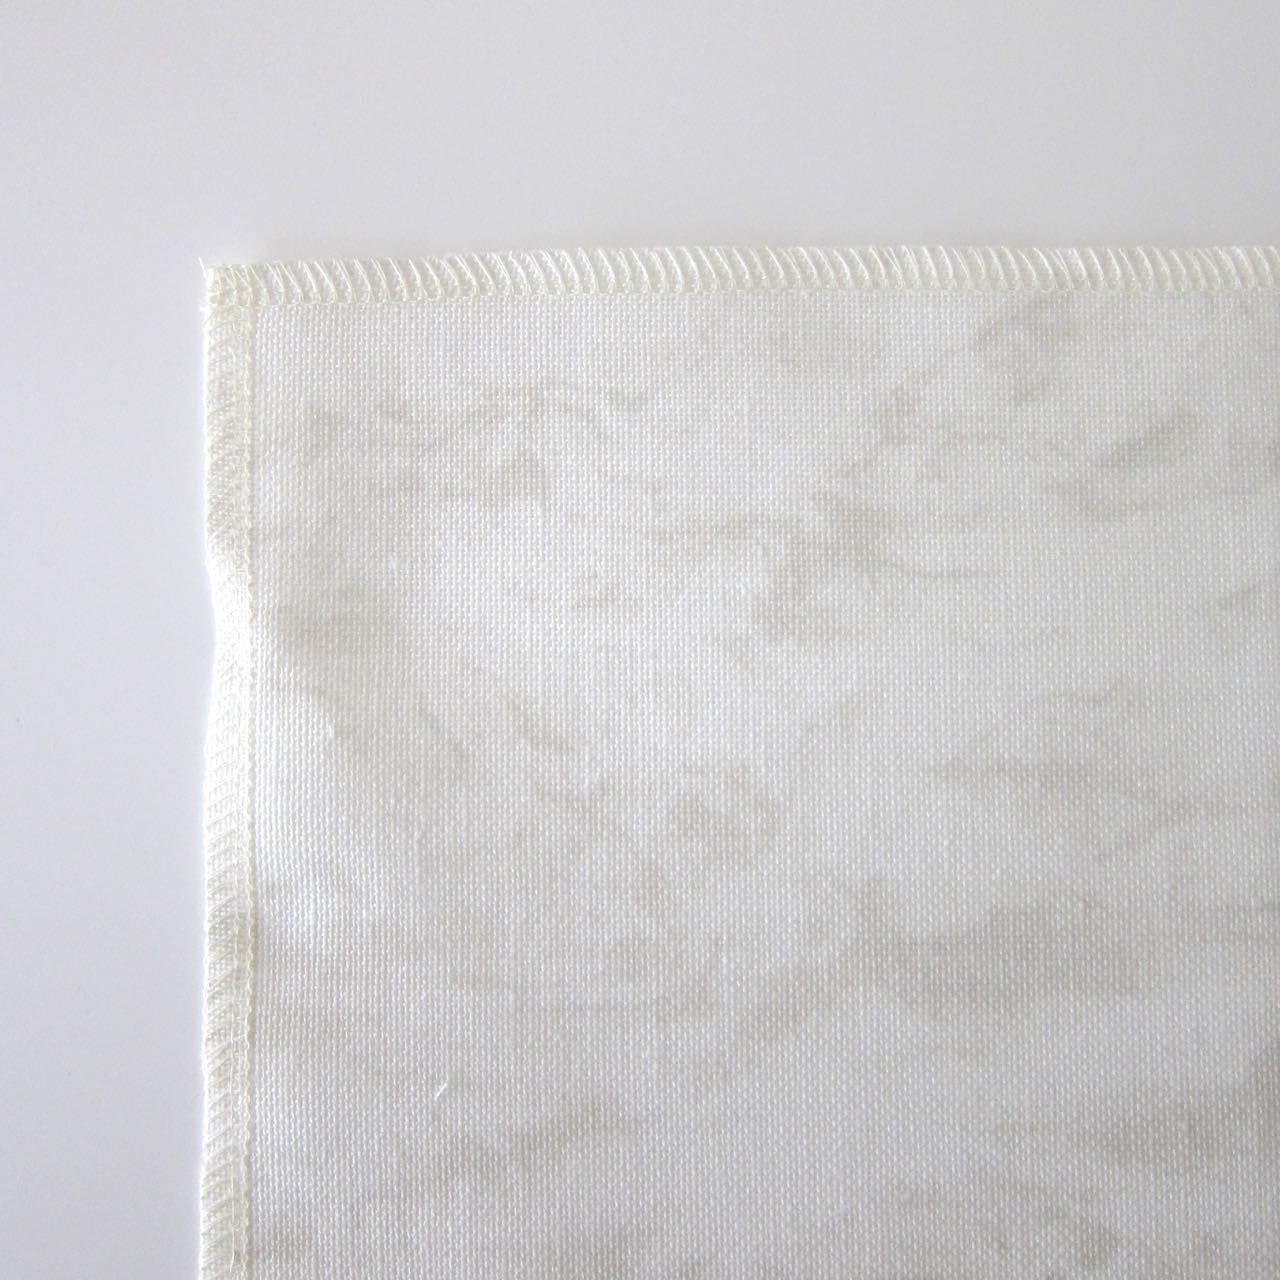 32 ct Belfast Linen - Vintage Smokey White Fabric - Snuggly Monkey